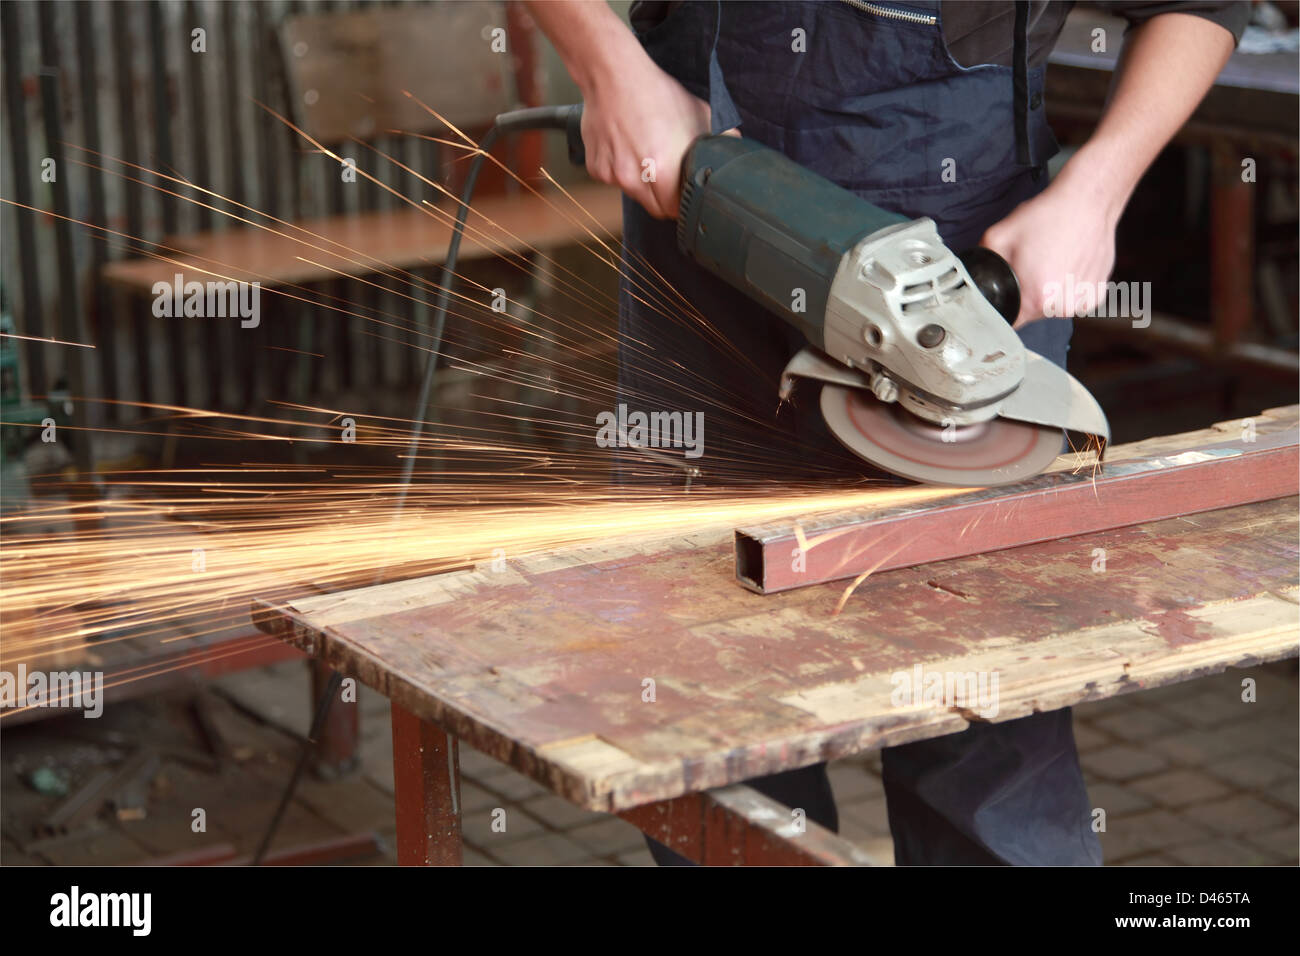 Grinding, close up of workers hand, tool and sparks - Stock Image